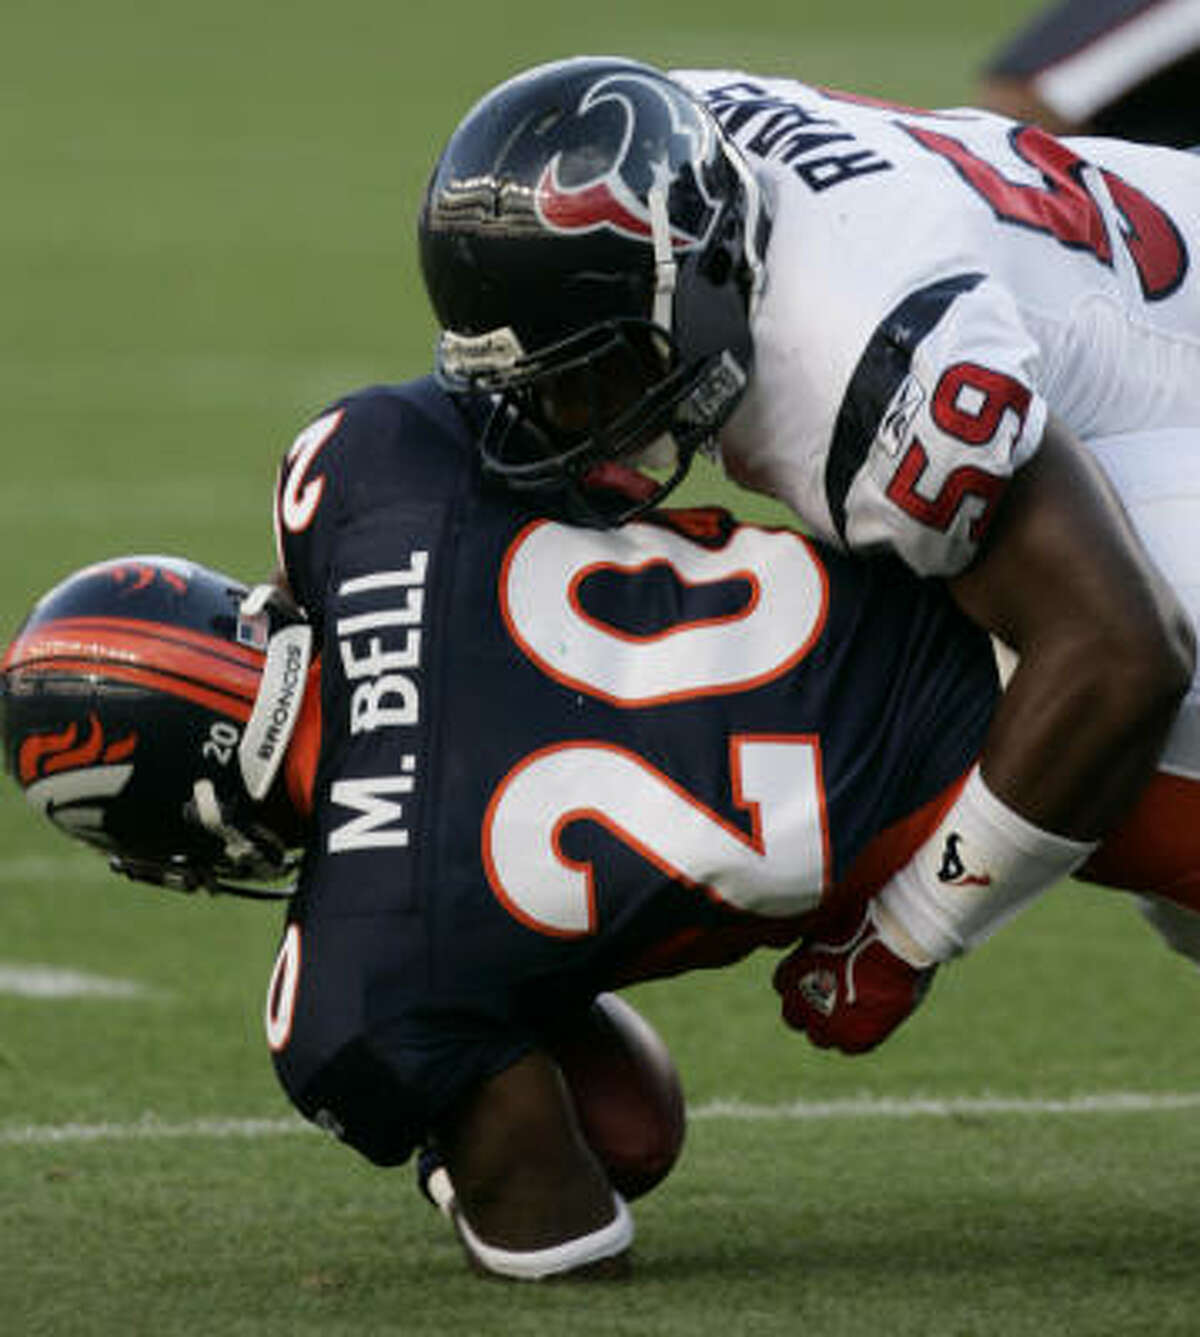 Mike Bell hits the field in Denver during a preseason game against the Texans in 2006.